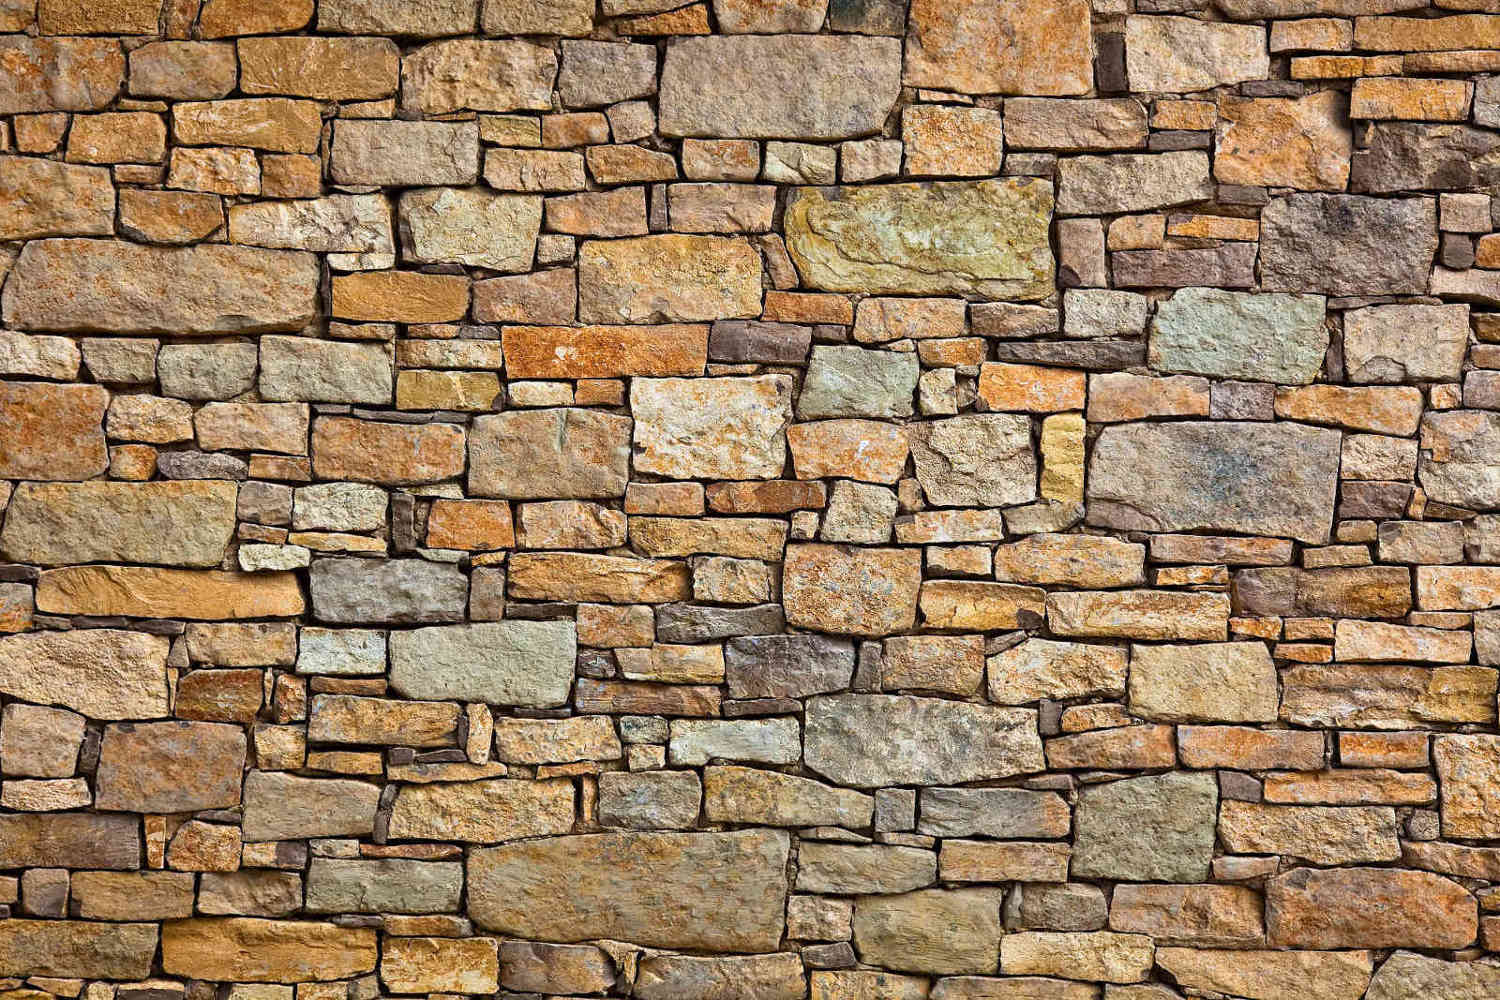 Stone wall mural wallpaper image collections home wall download stone wall mural wallpaper gallery stone wall mural wallpaper amipublicfo image collections amipublicfo Images